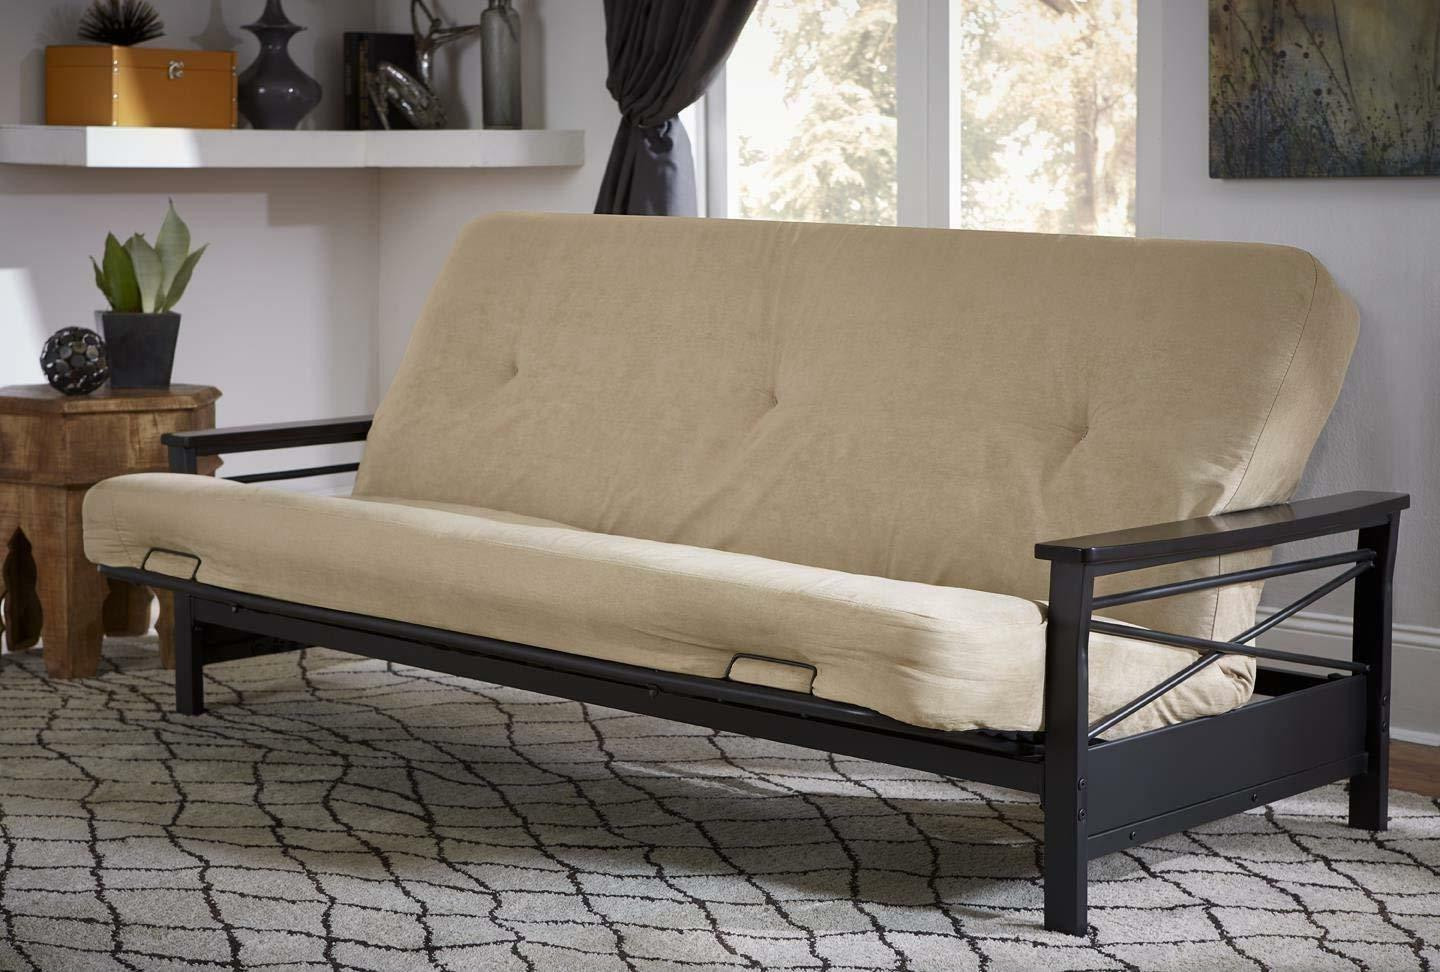 Bed Couch 6-Inch Foam Layering Cover